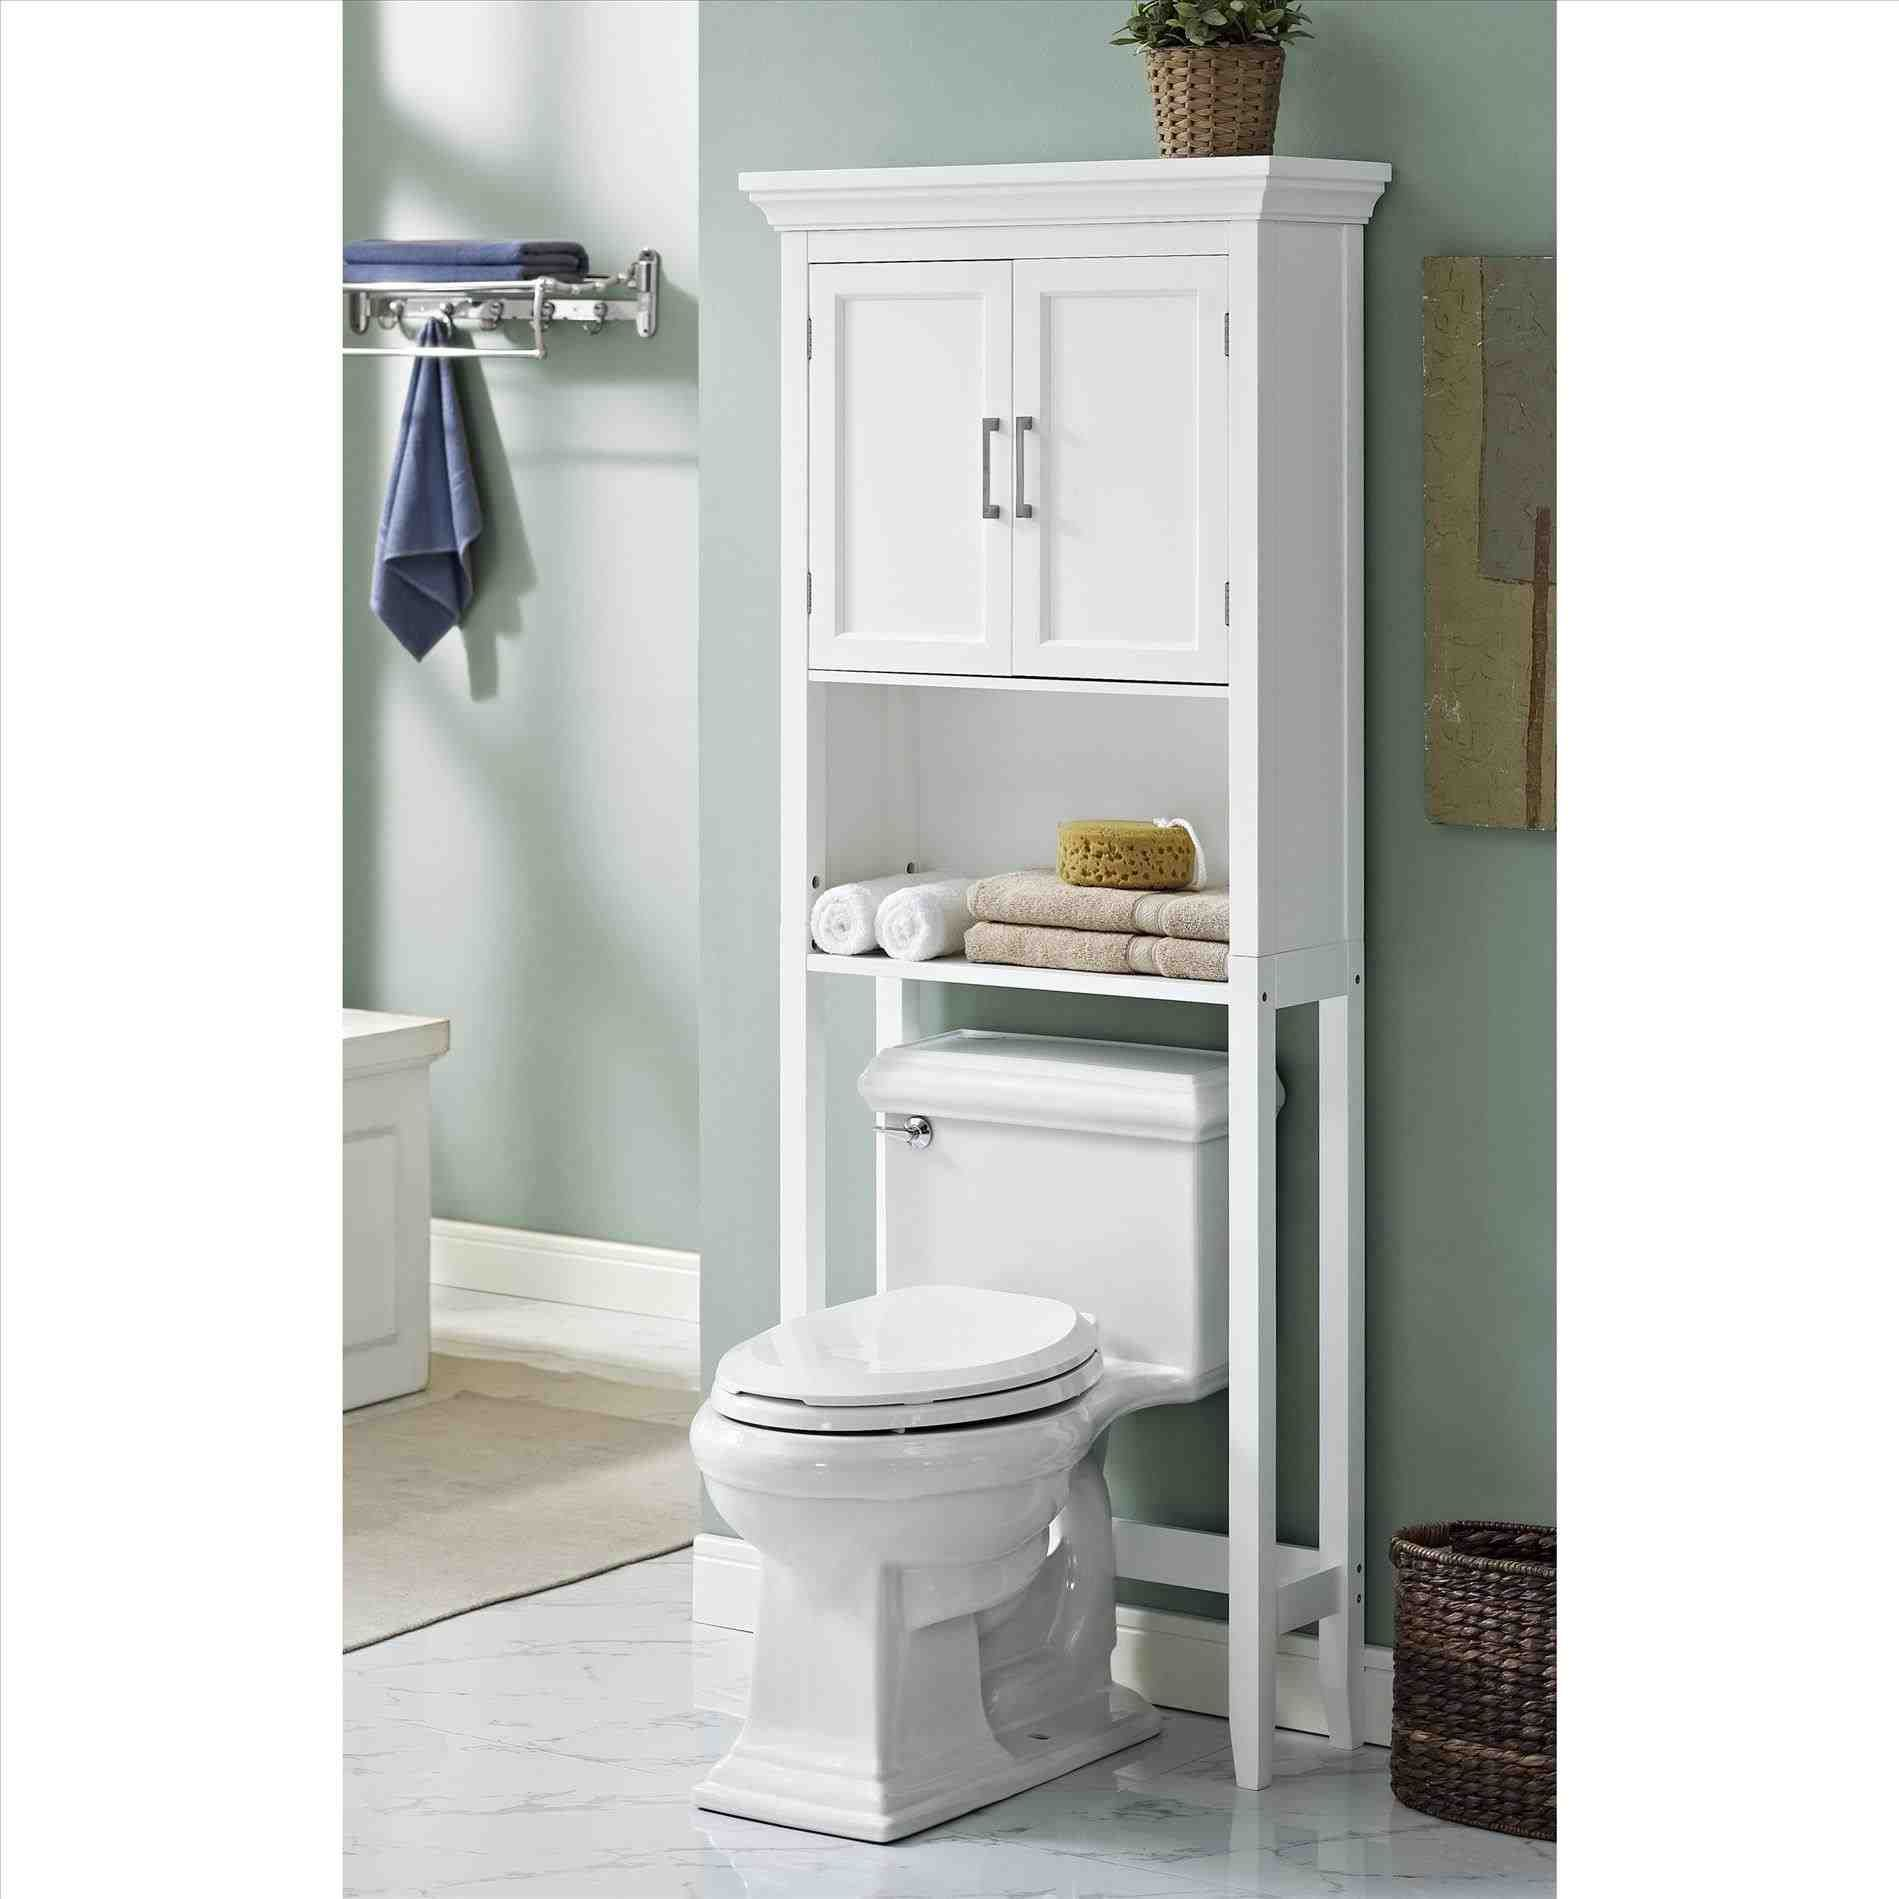 this towel cabinet above toilet space saving faux granite finish shelf fits wood bathroombathroom cabinets over toiletover full size of bathroom - Bathroom Cabinets That Fit Over The Toilet